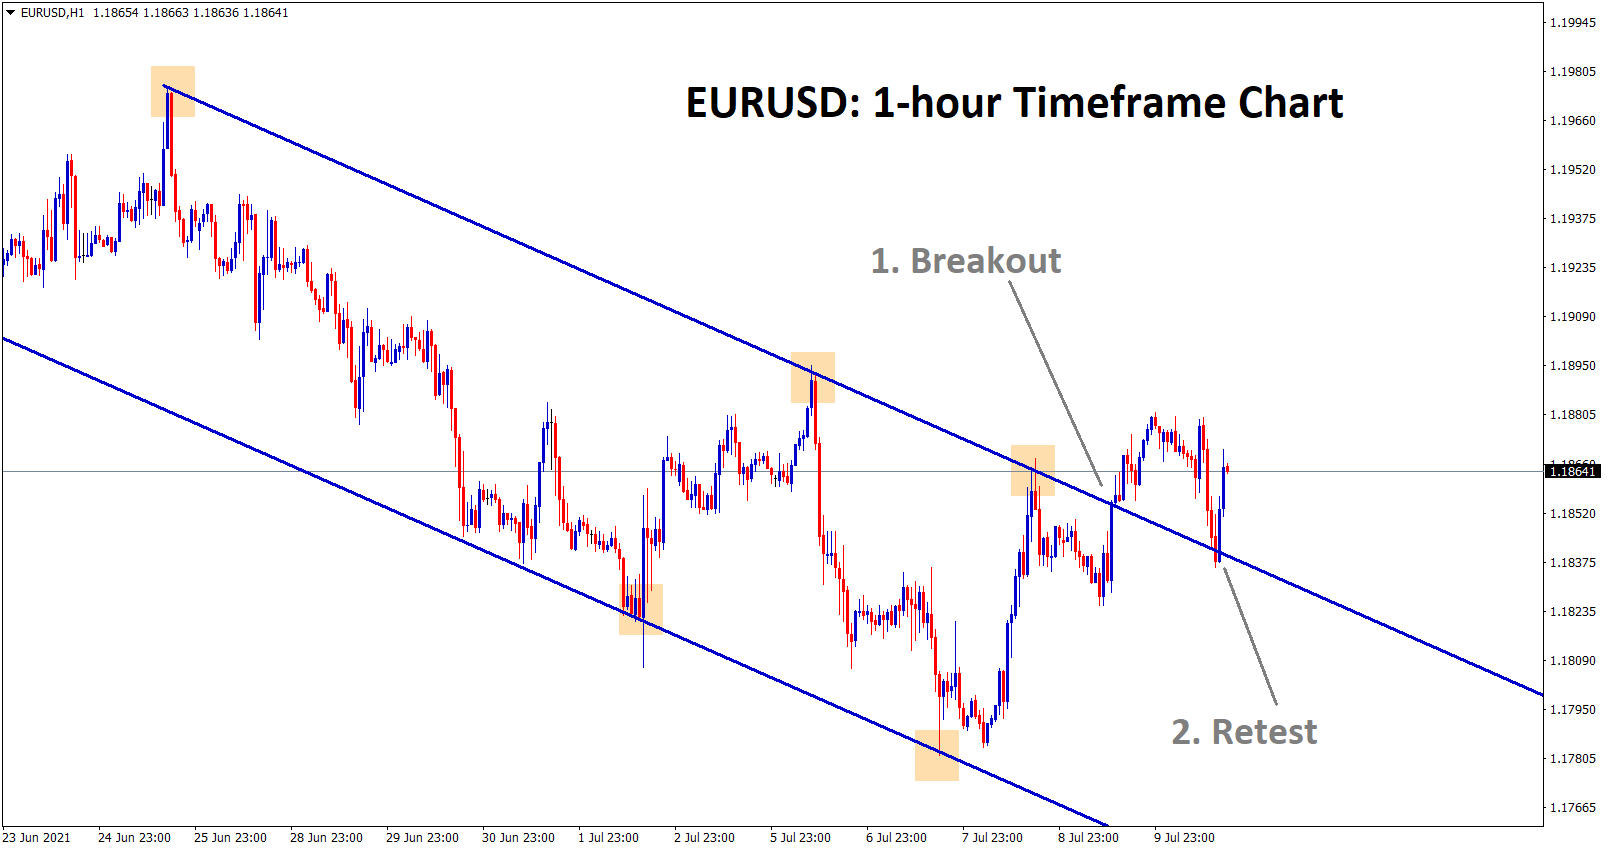 Breakout and retest of the descending channel happened in the EURUSD 1hr chart